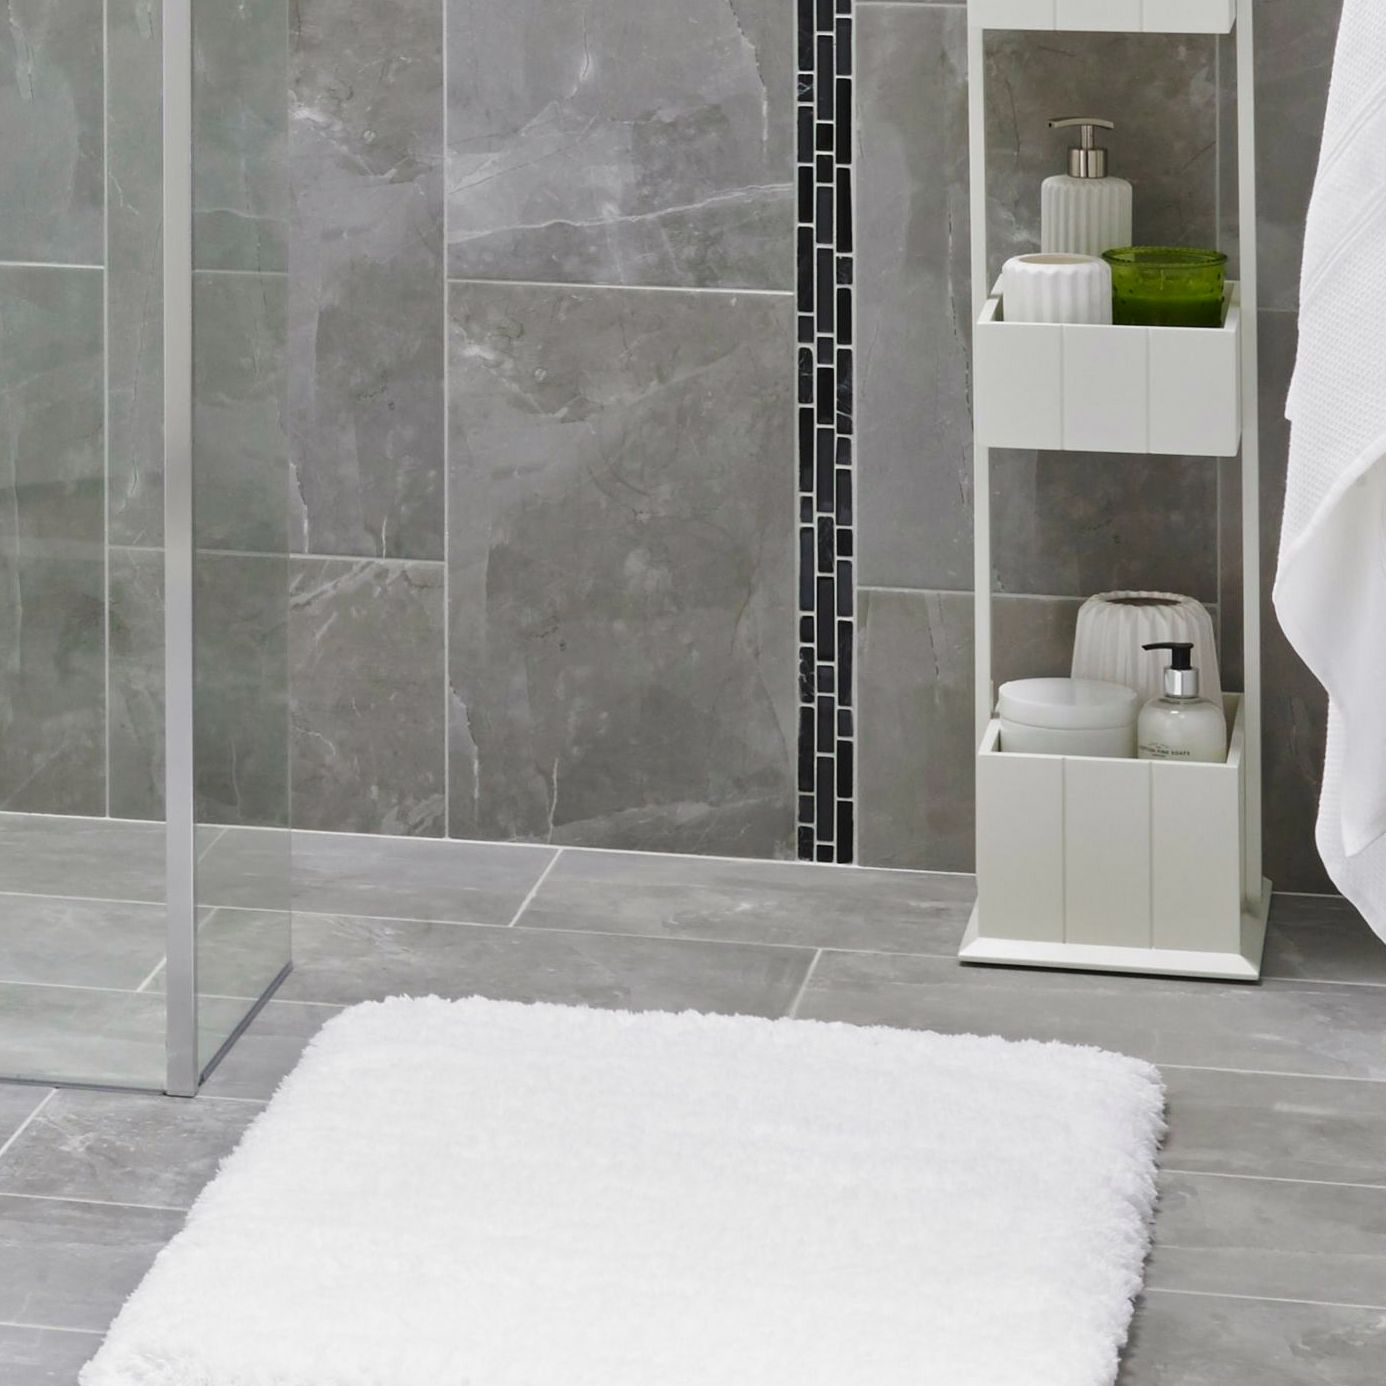 b and q bathroom flooring arlington tile range floor amp wall tiles diy at b amp q 21941